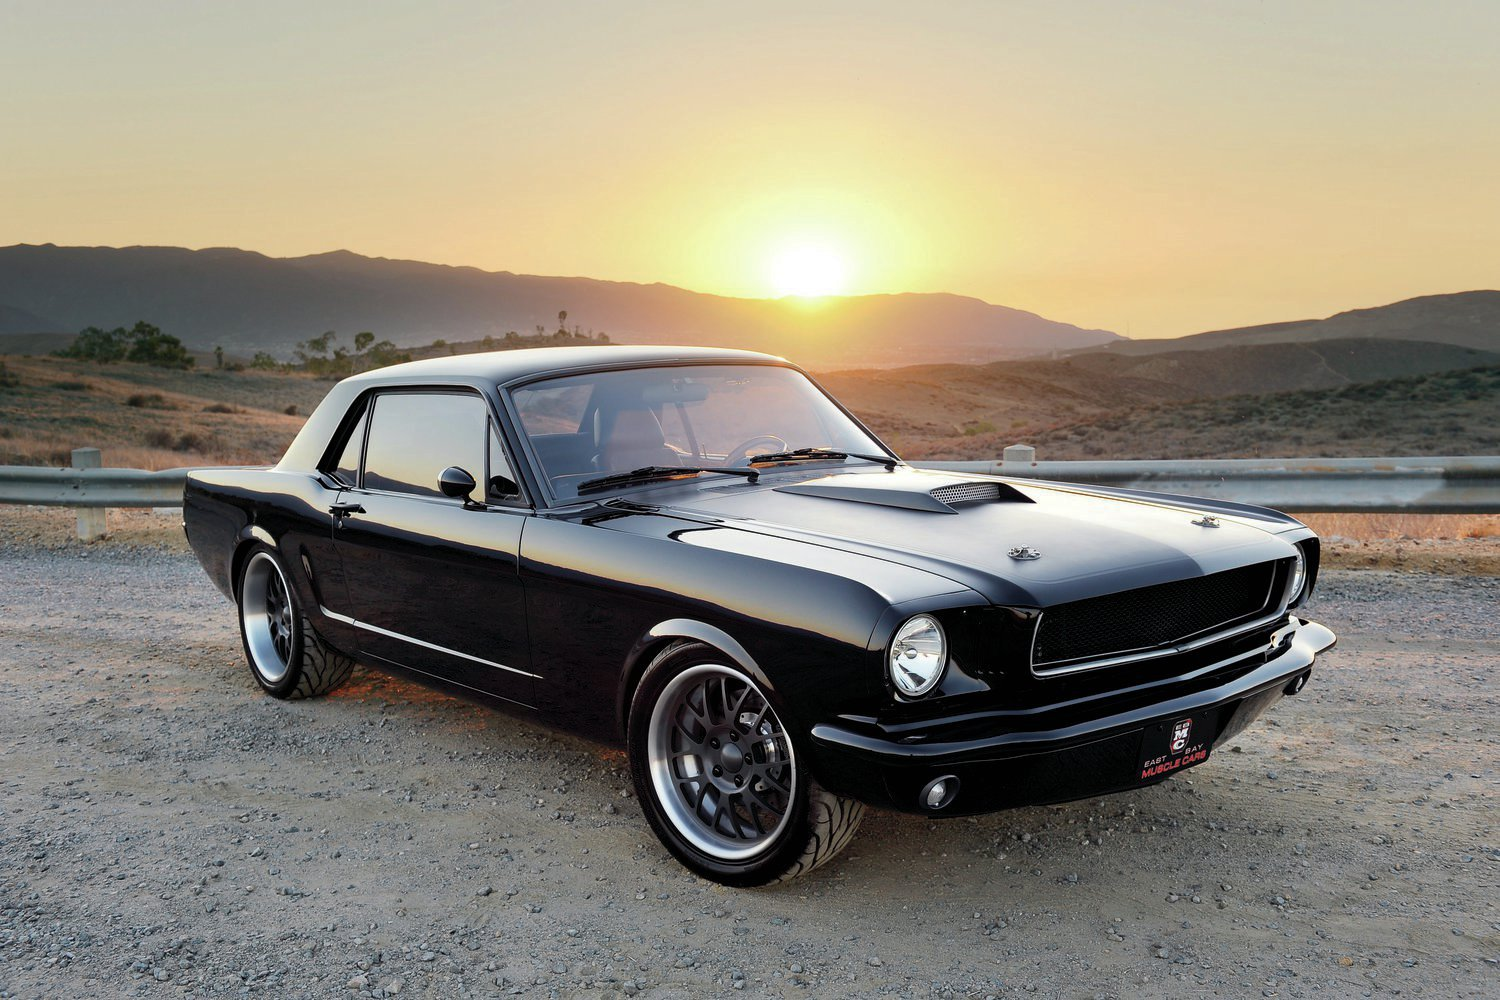 1965 Ford Mustang Pics, Vehicles Collection